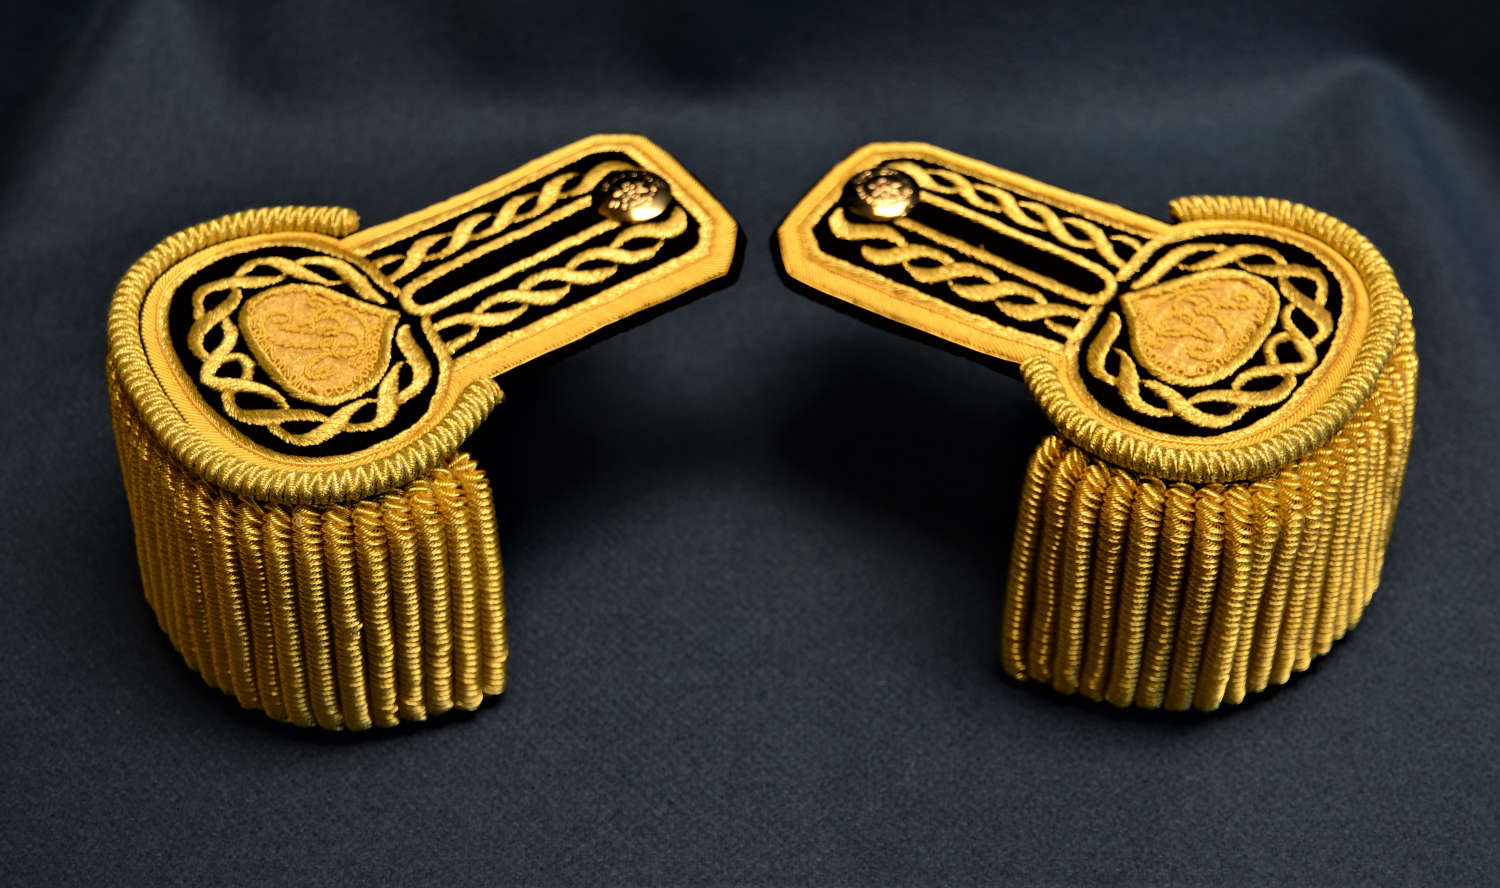 British, 1830s Commissariat Epaulettes